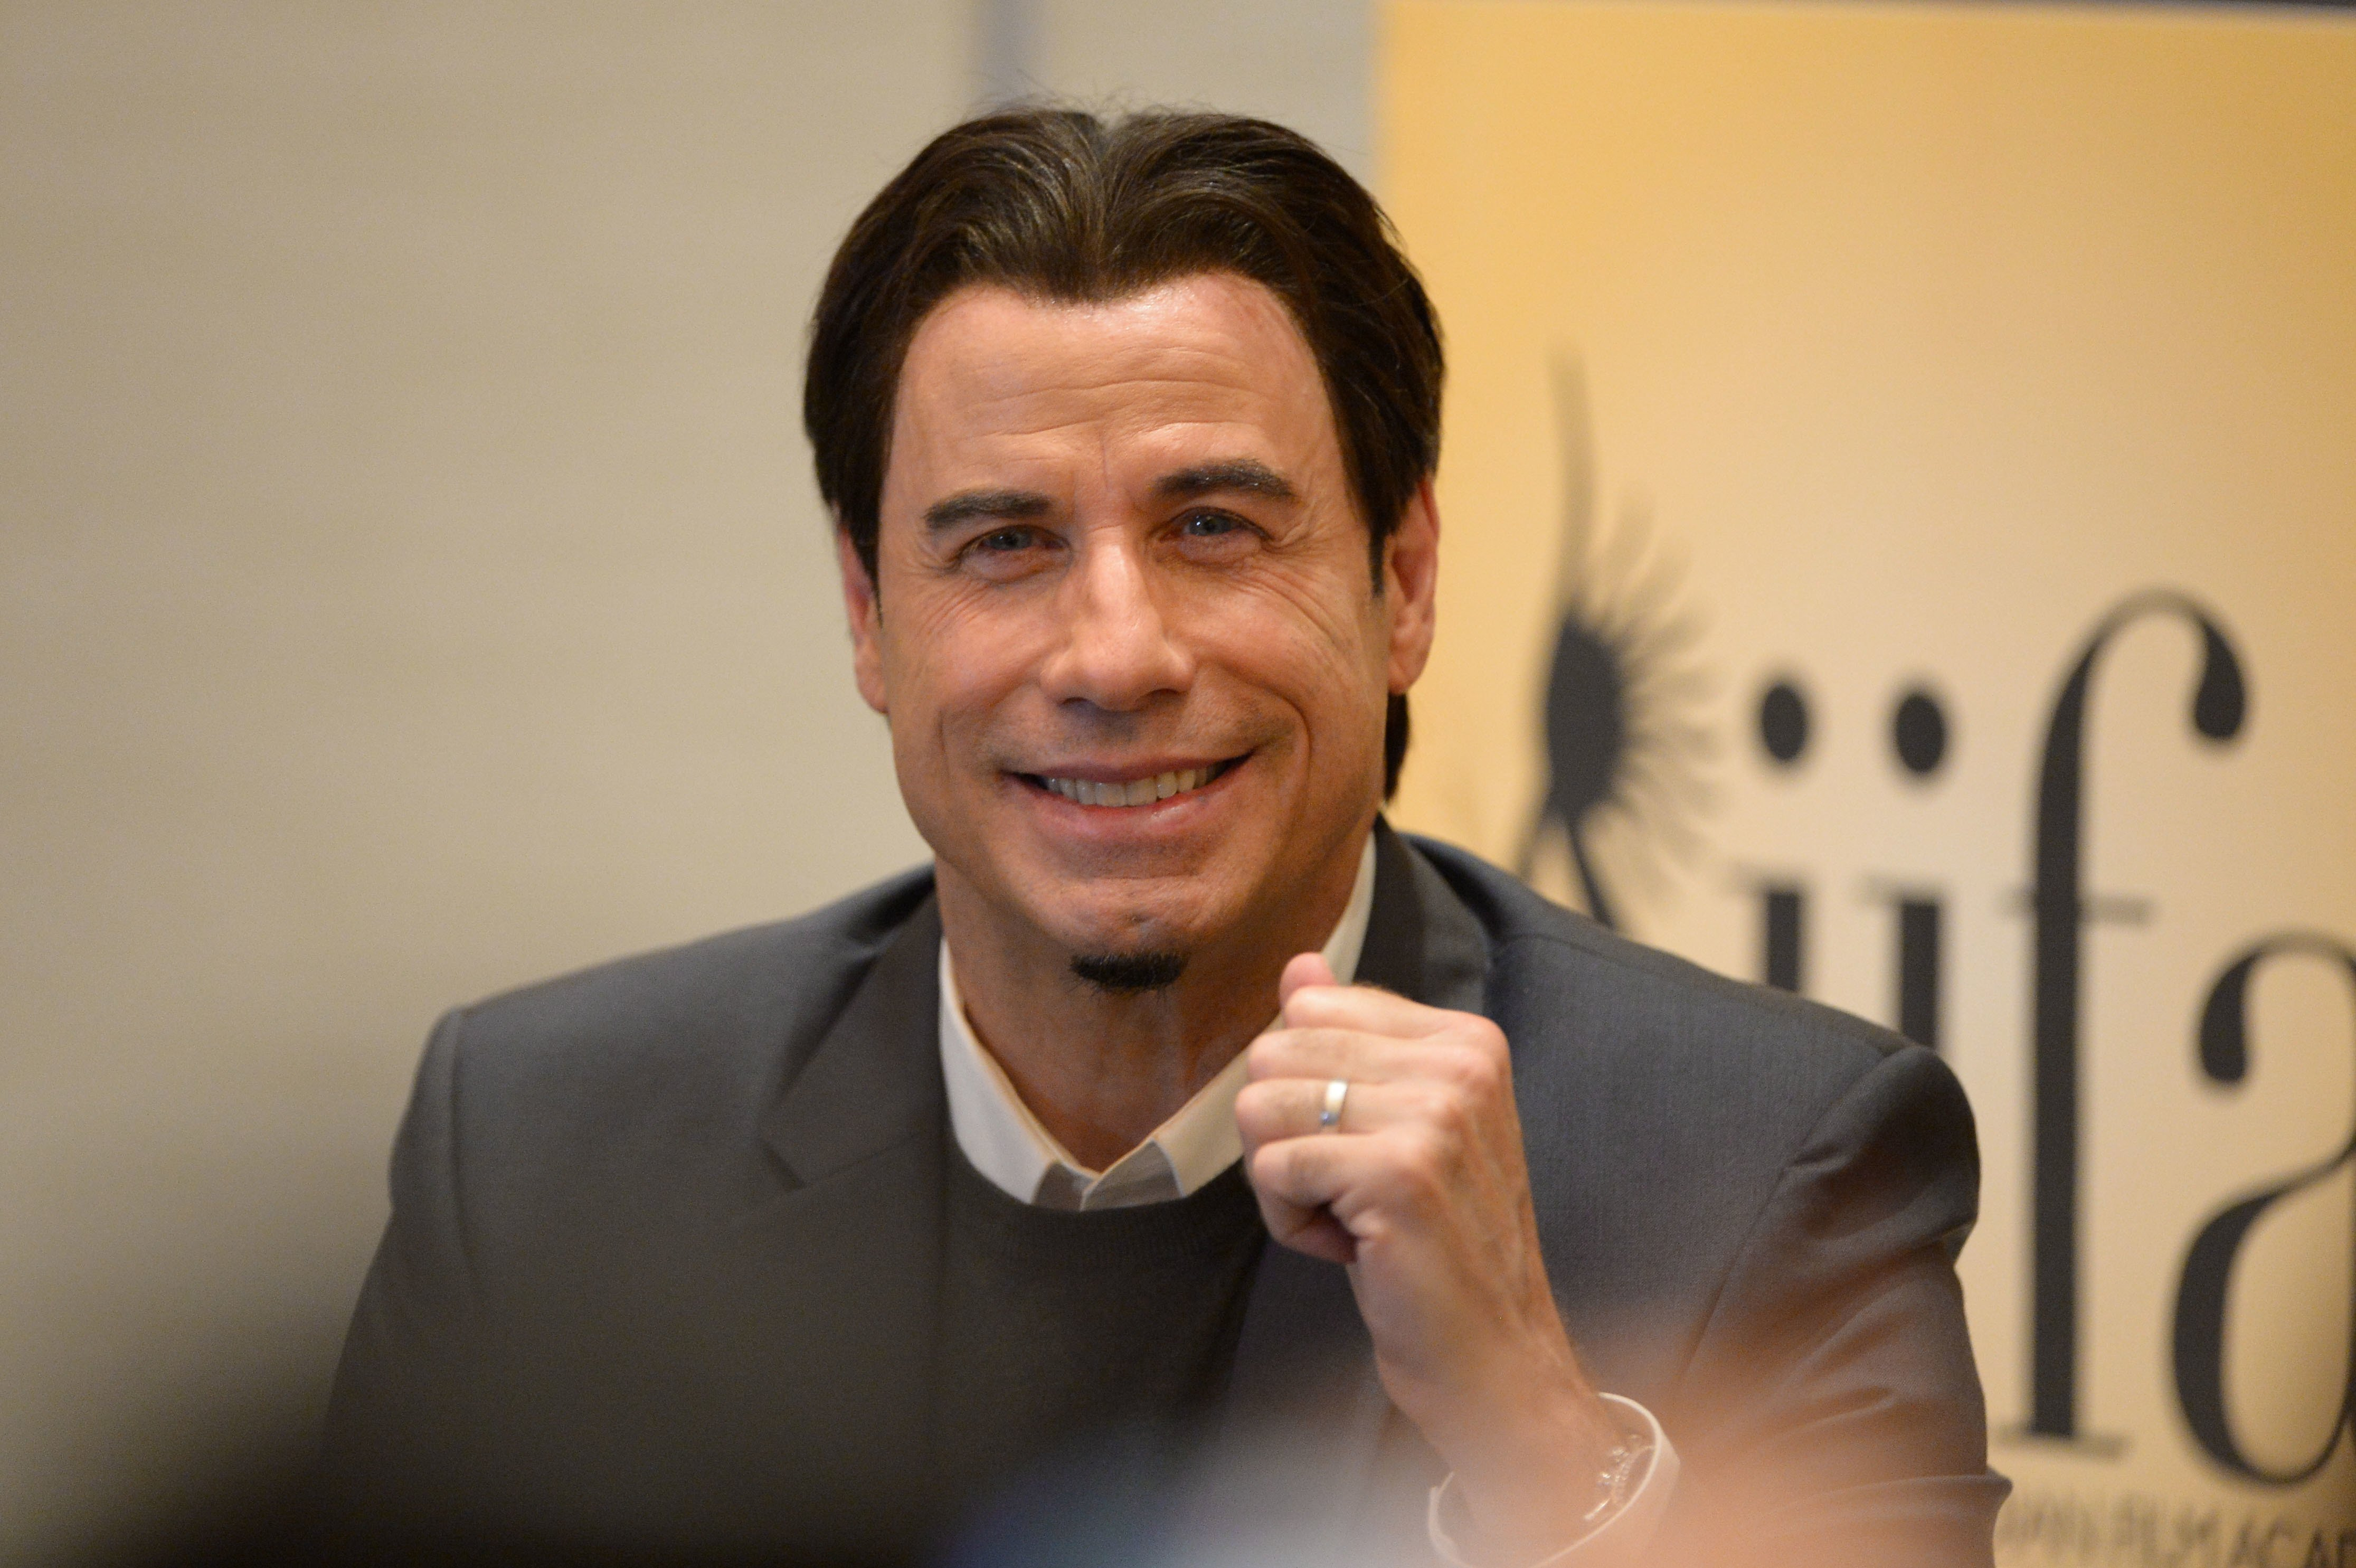 ohn Travolta attends a press conference during the IIFA Awards week at Hilton Tampa Downtown on April 26, 2014 in Tampa, Florida. | Source: Getty Images